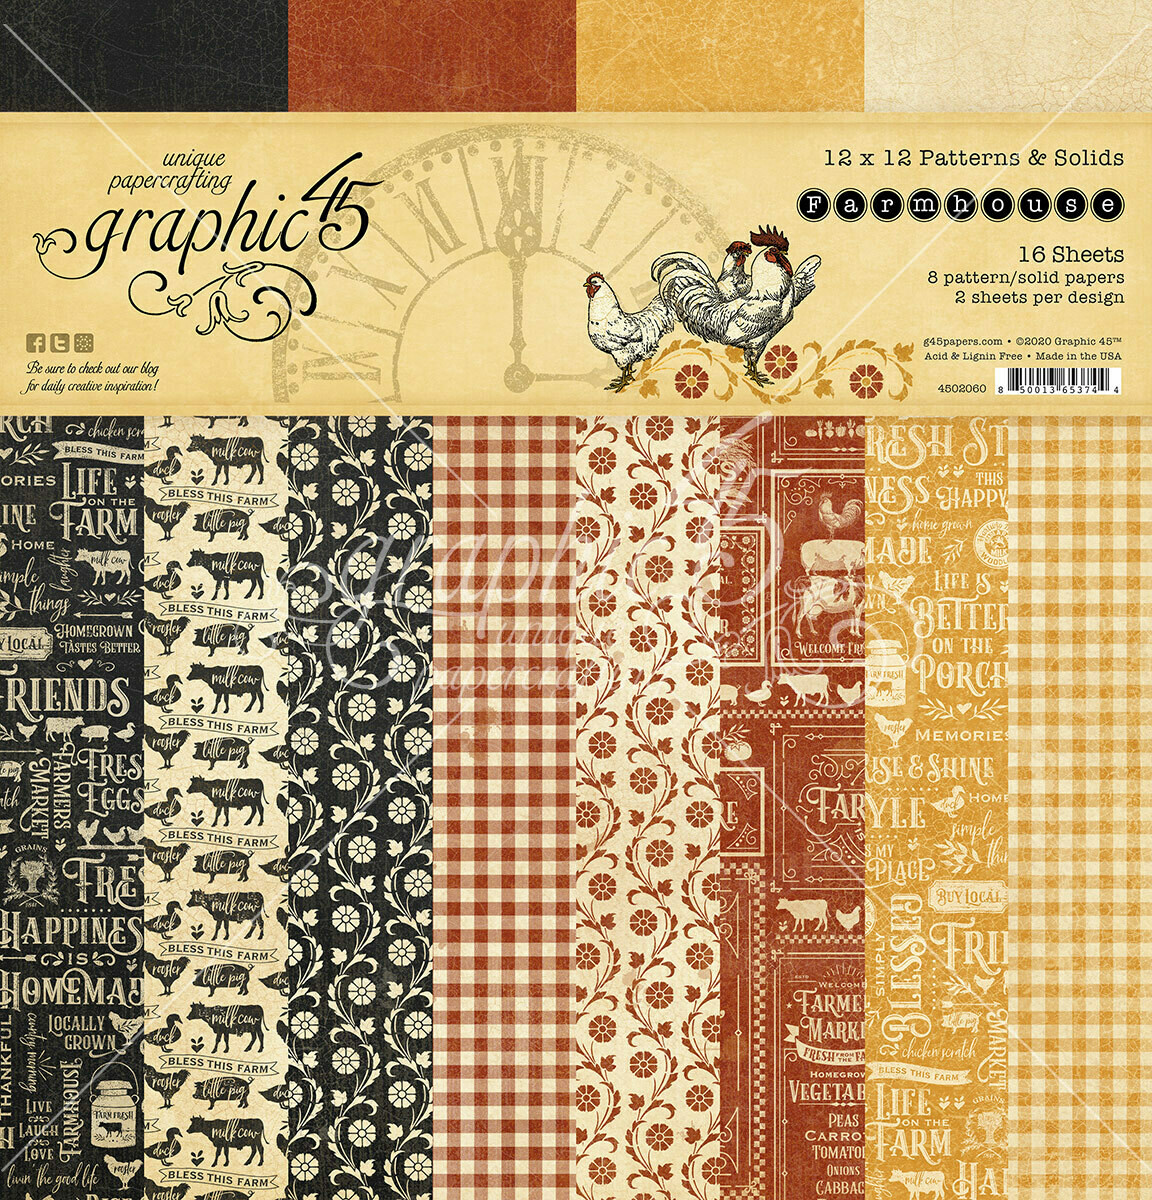 Farmhouse 12x12 Patterns & Solids - Farmhouse Collection - Graphic 45